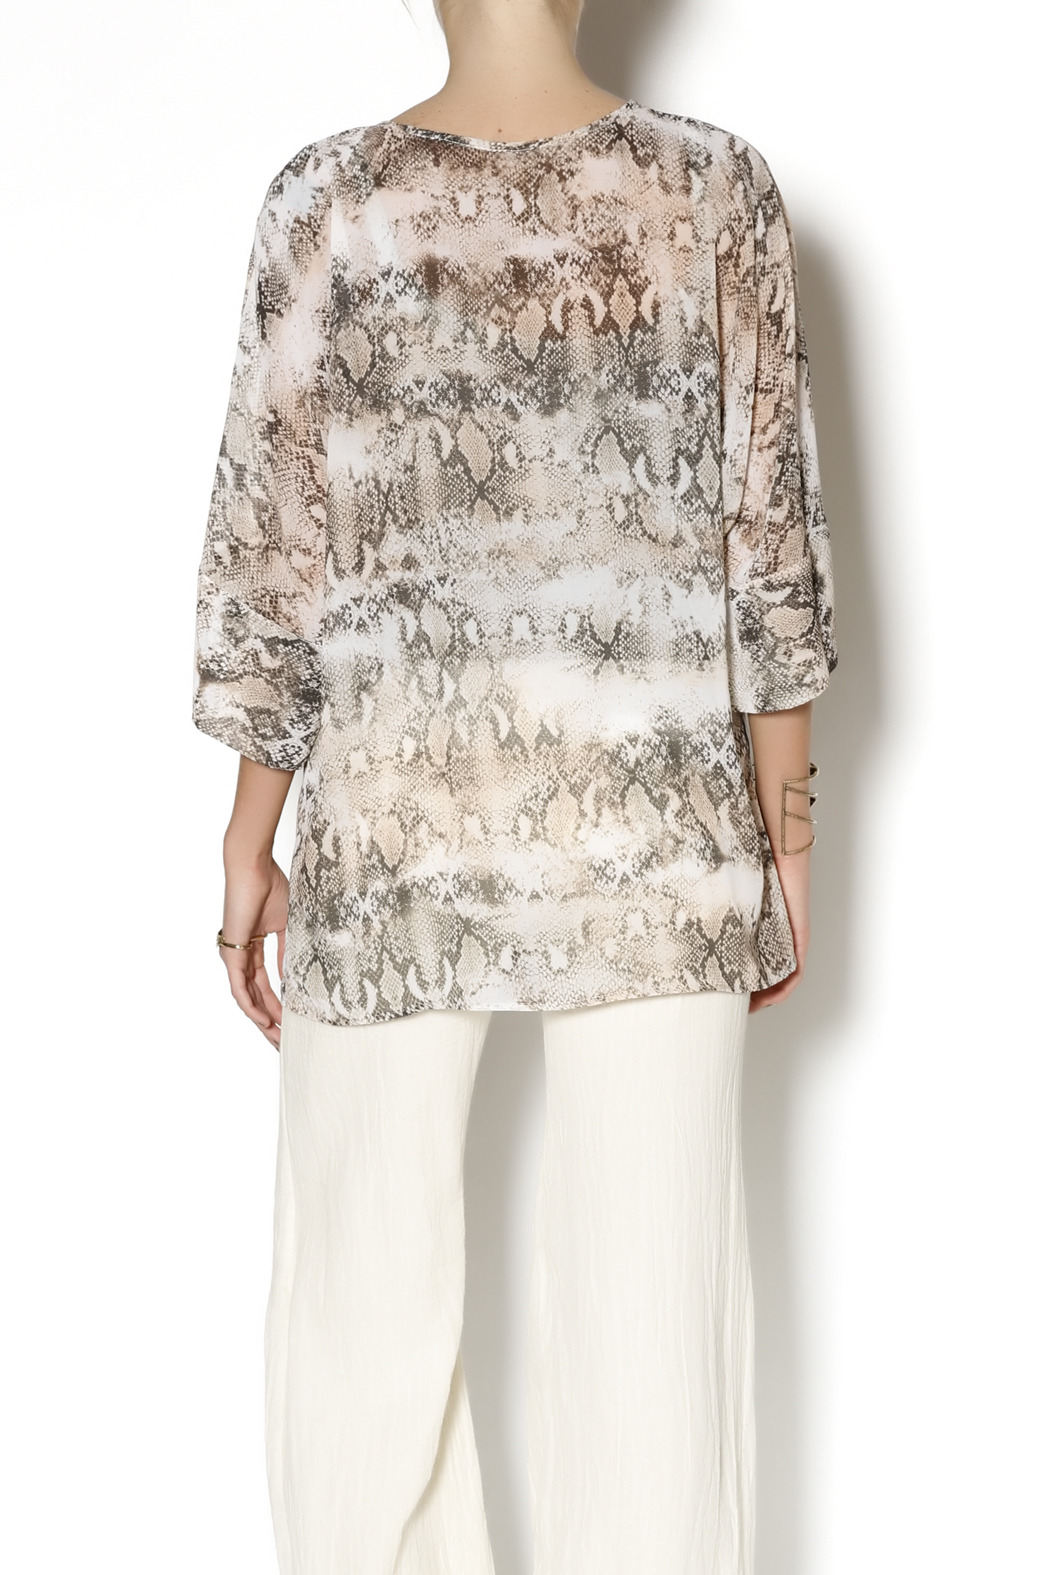 Julian Chang Snake Print Tunic - Back Cropped Image